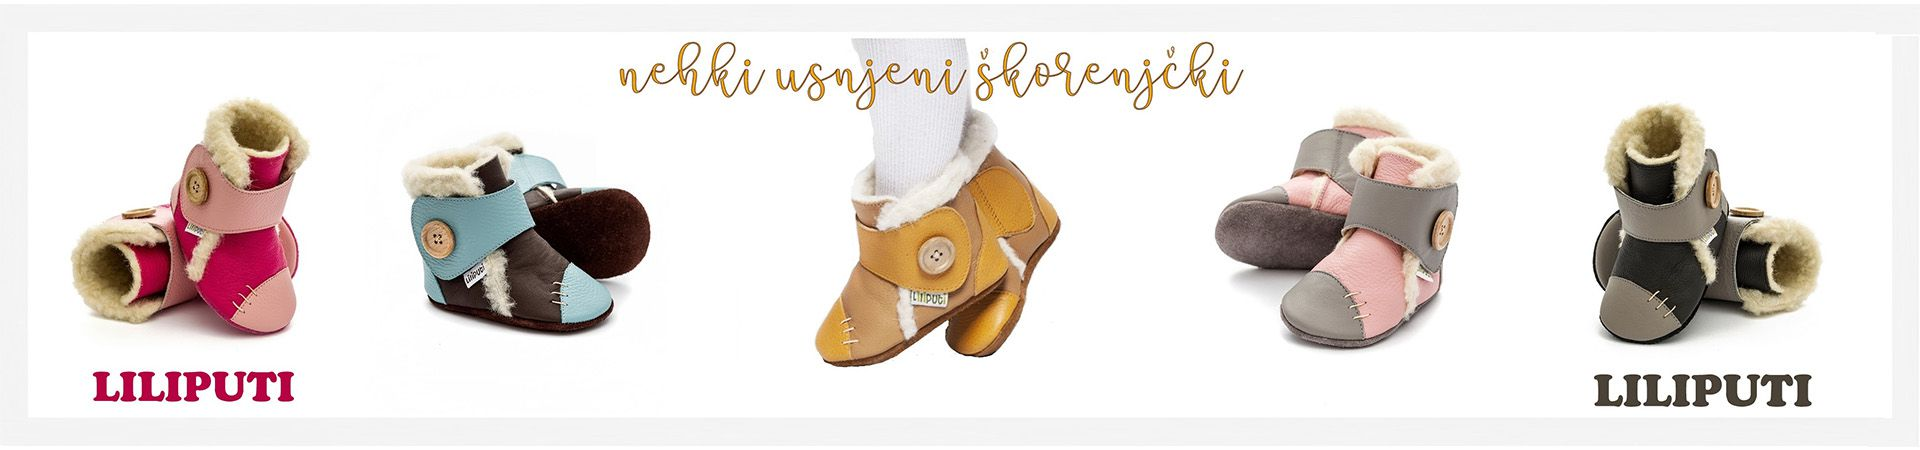 otroski-skorenjcki-liliputi-wowbaby.si-leather-baby-shoes-booties-naslovnica1